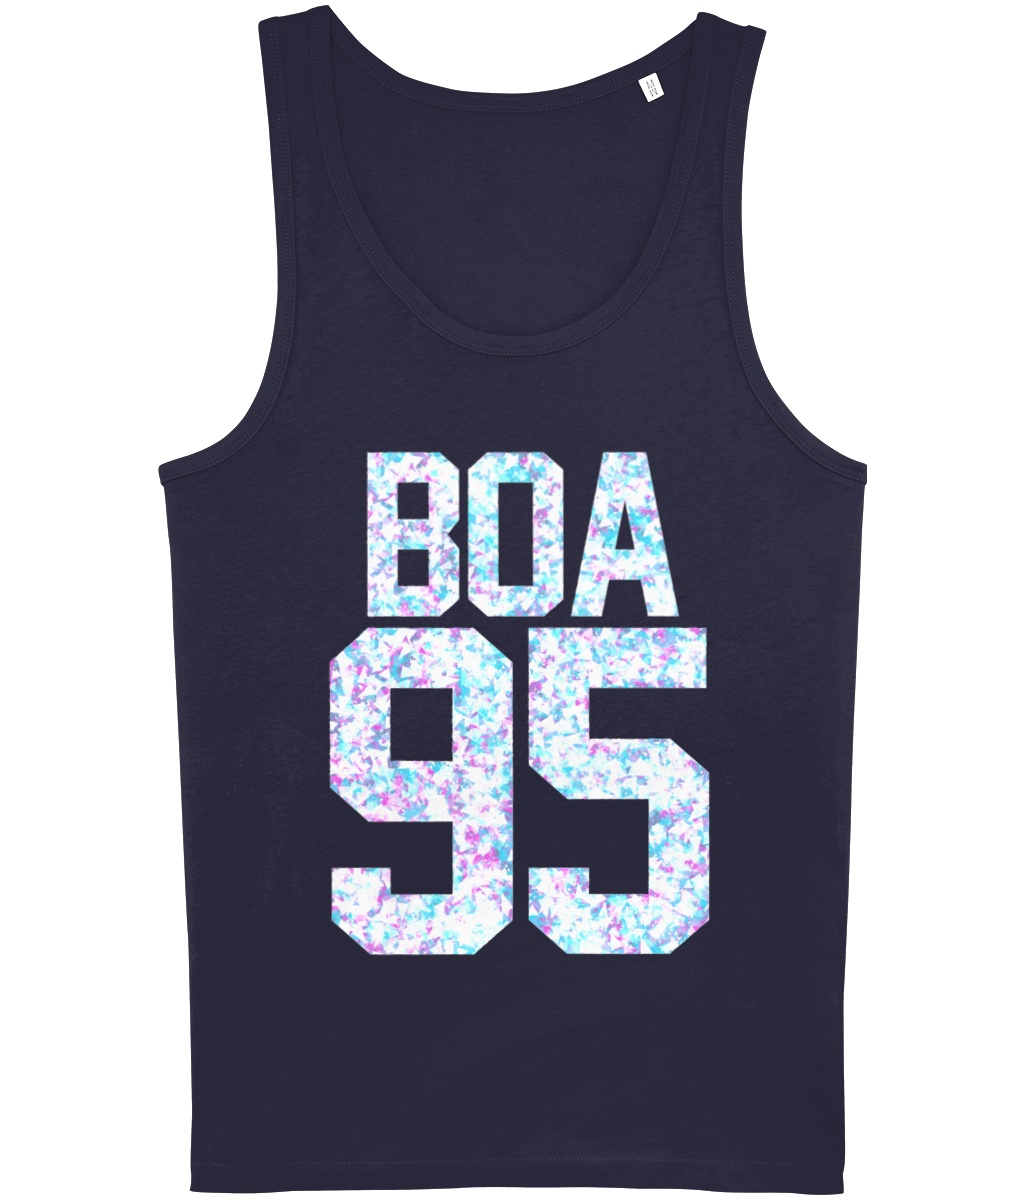 BOA - 95 Vest - SNATCHED MERCH